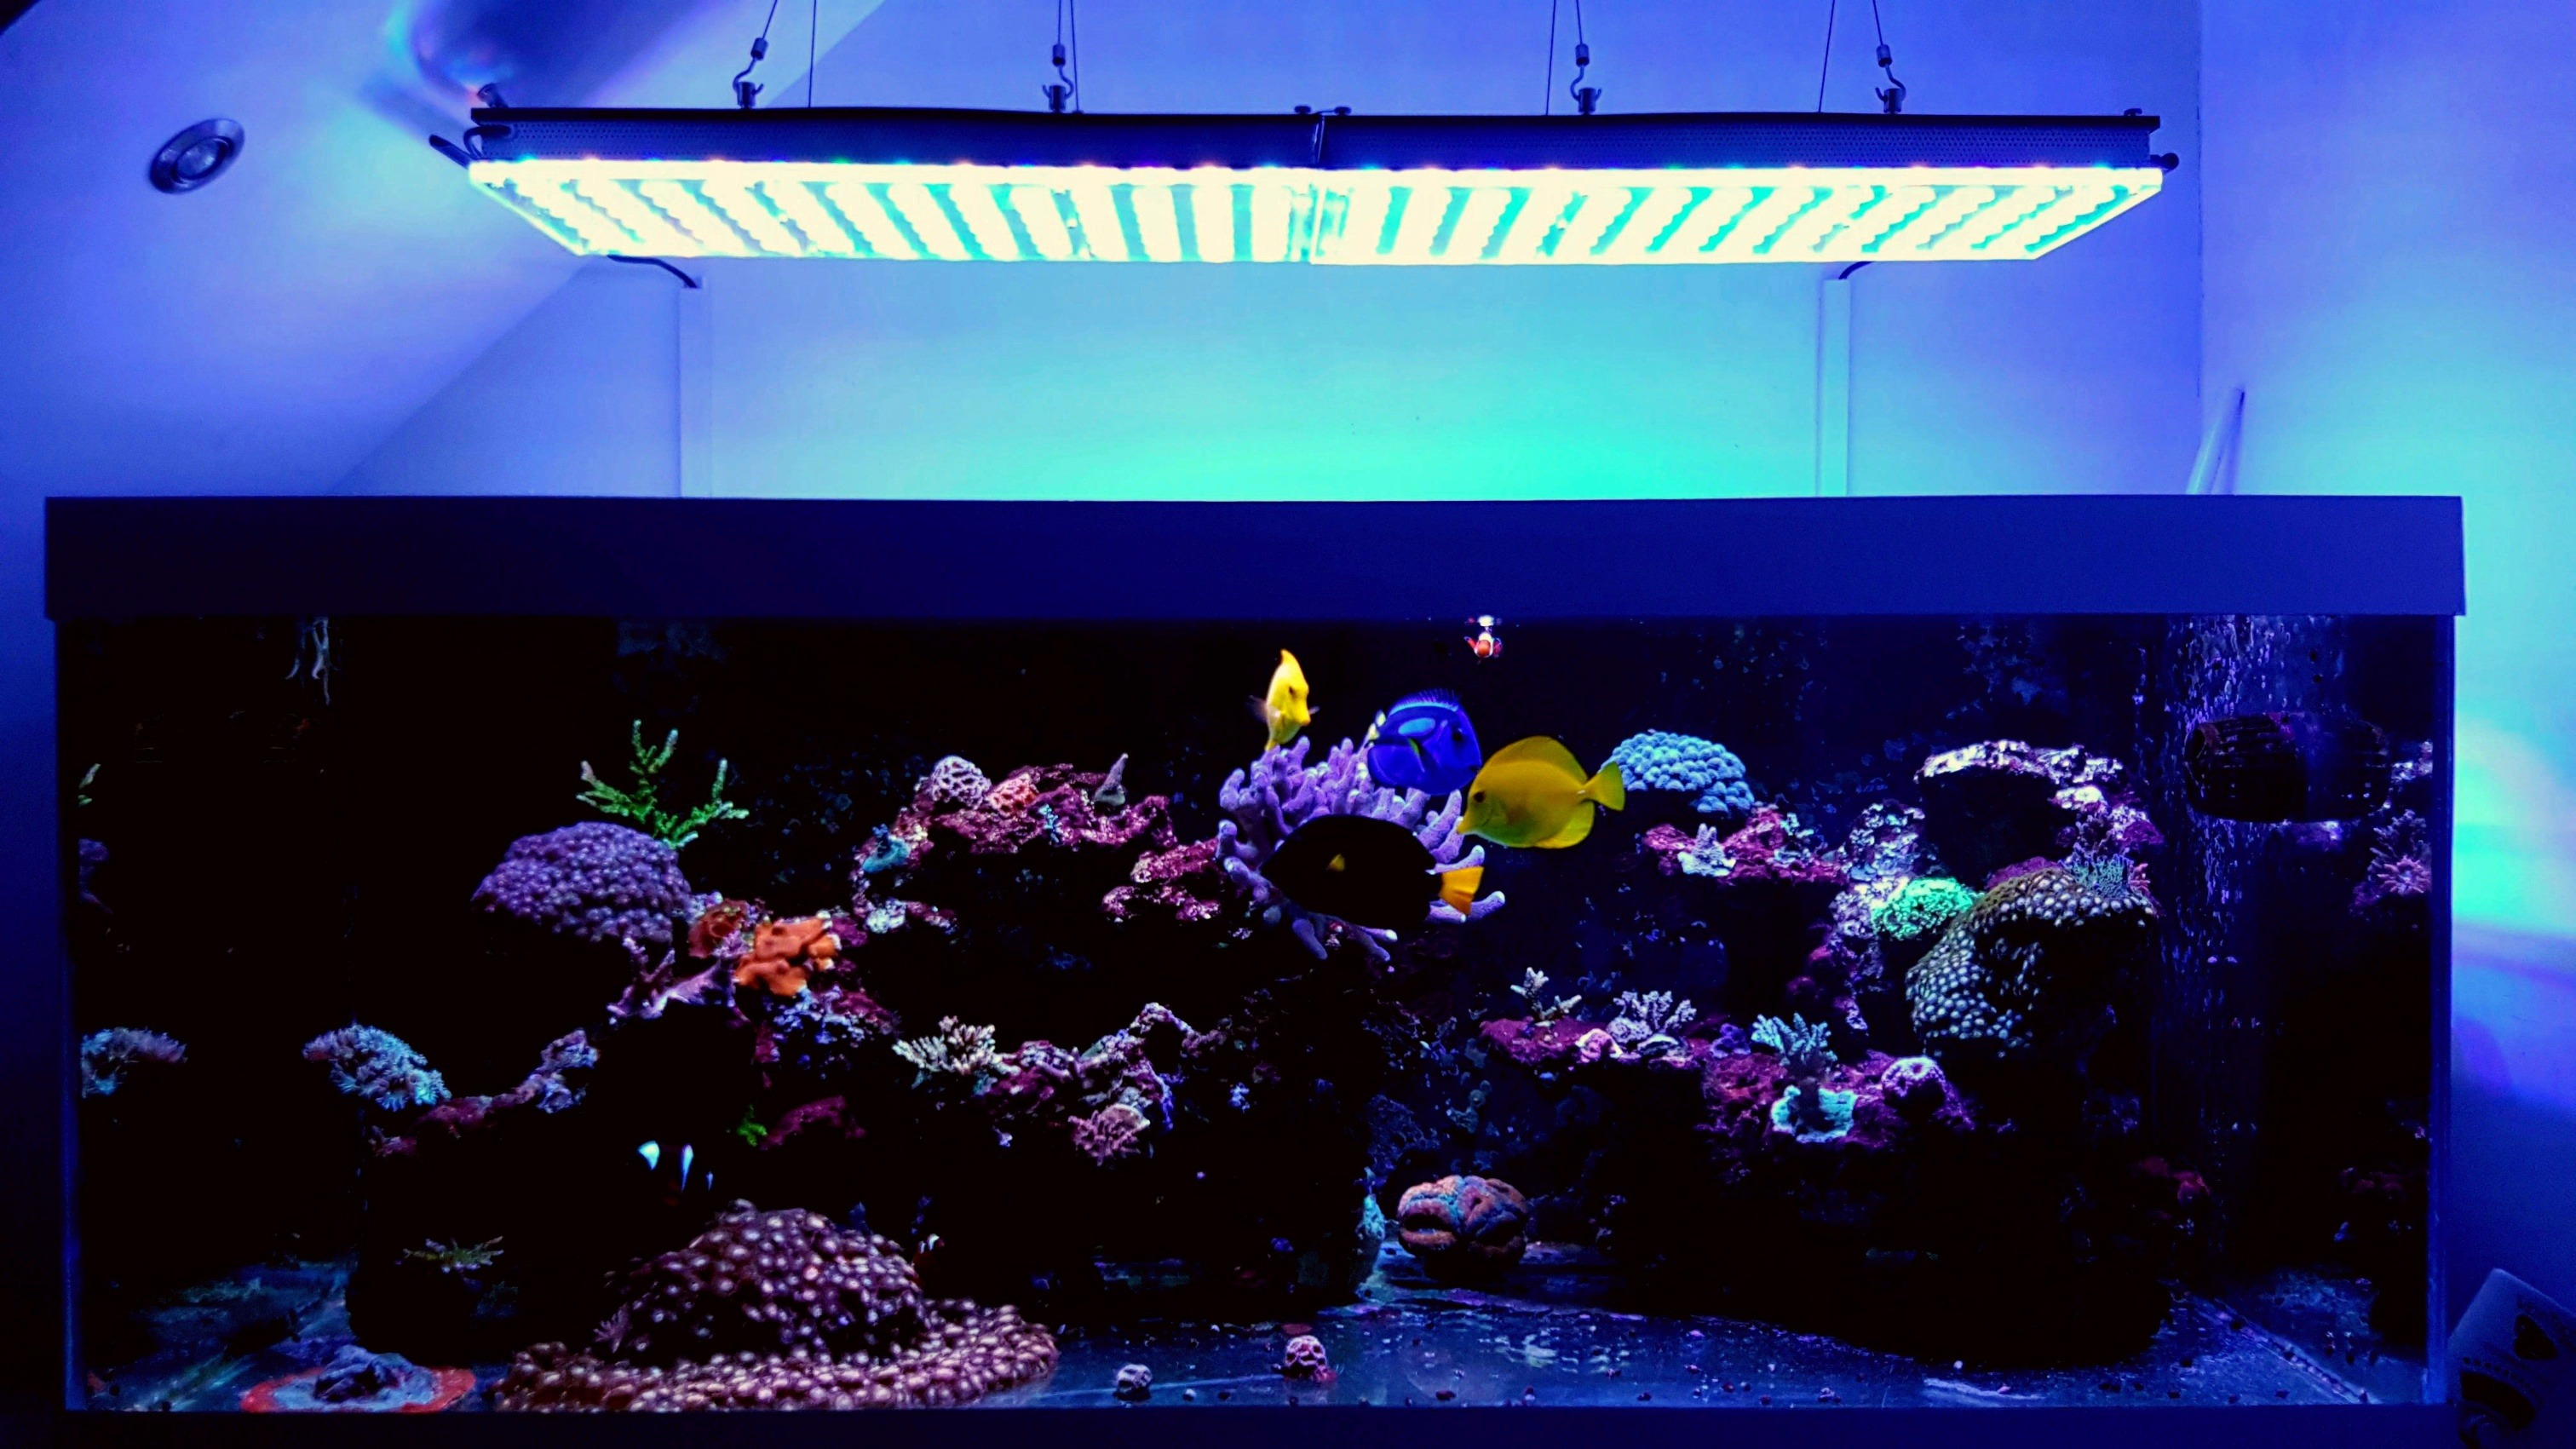 klanten in het verenigd koninkrijk bekijken atlantik v4 reef aquarium led verlichting orphek. Black Bedroom Furniture Sets. Home Design Ideas